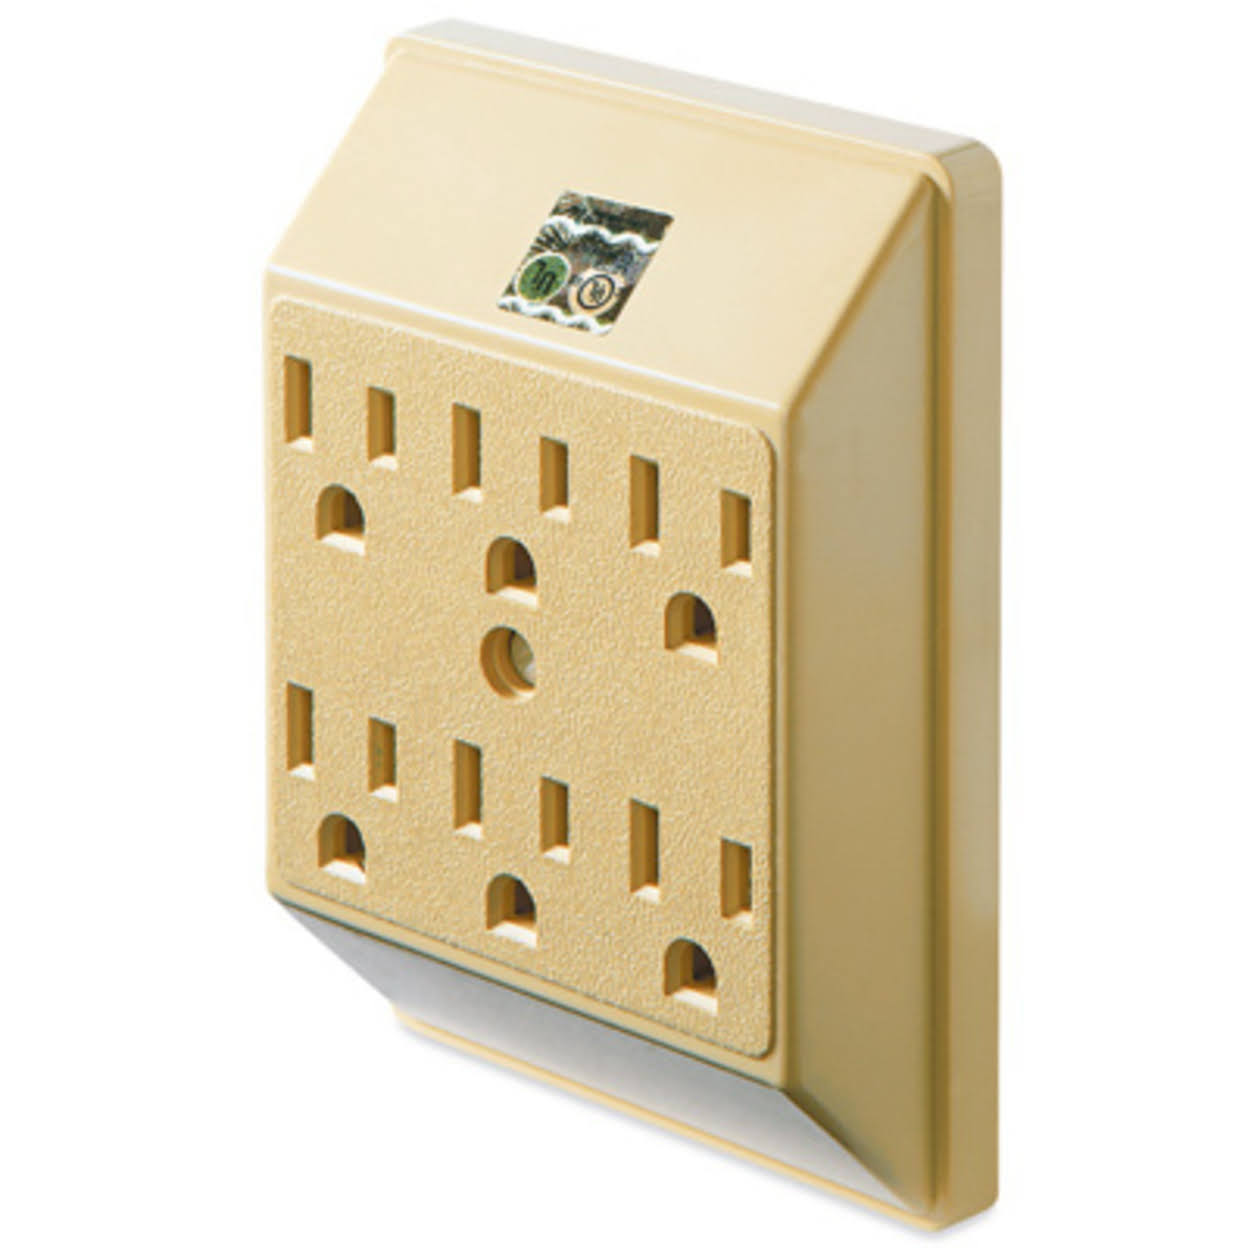 Master Electrician Grounded in Wall and Wall Mount Adapter - Ivory, 6 outlet